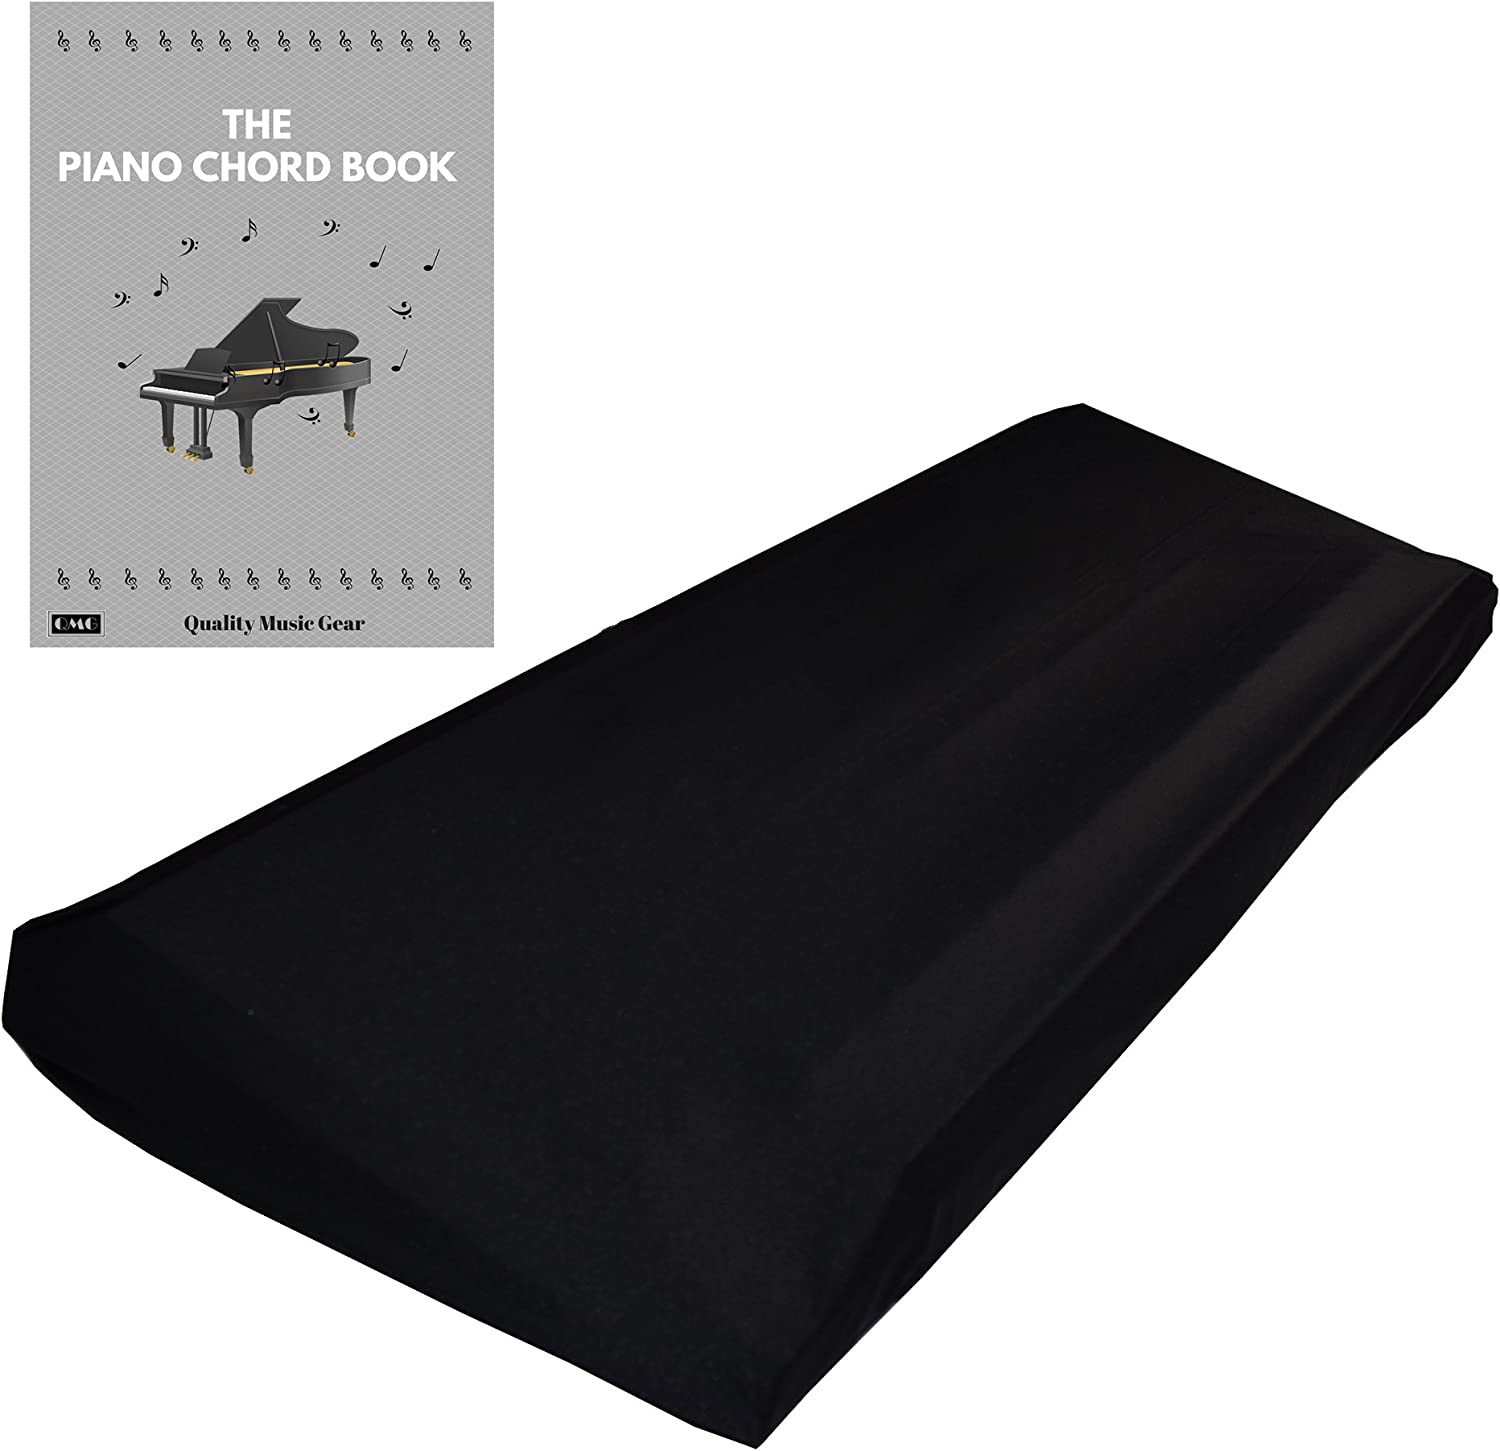 "QMG Stretchable Keyboard Dust Cover for 61 & 76 Key-keyboard: Best for all Digital Pianos & Consoles – Adjustable Elastic Cord; Machine Washable – 41""×16""×6""."